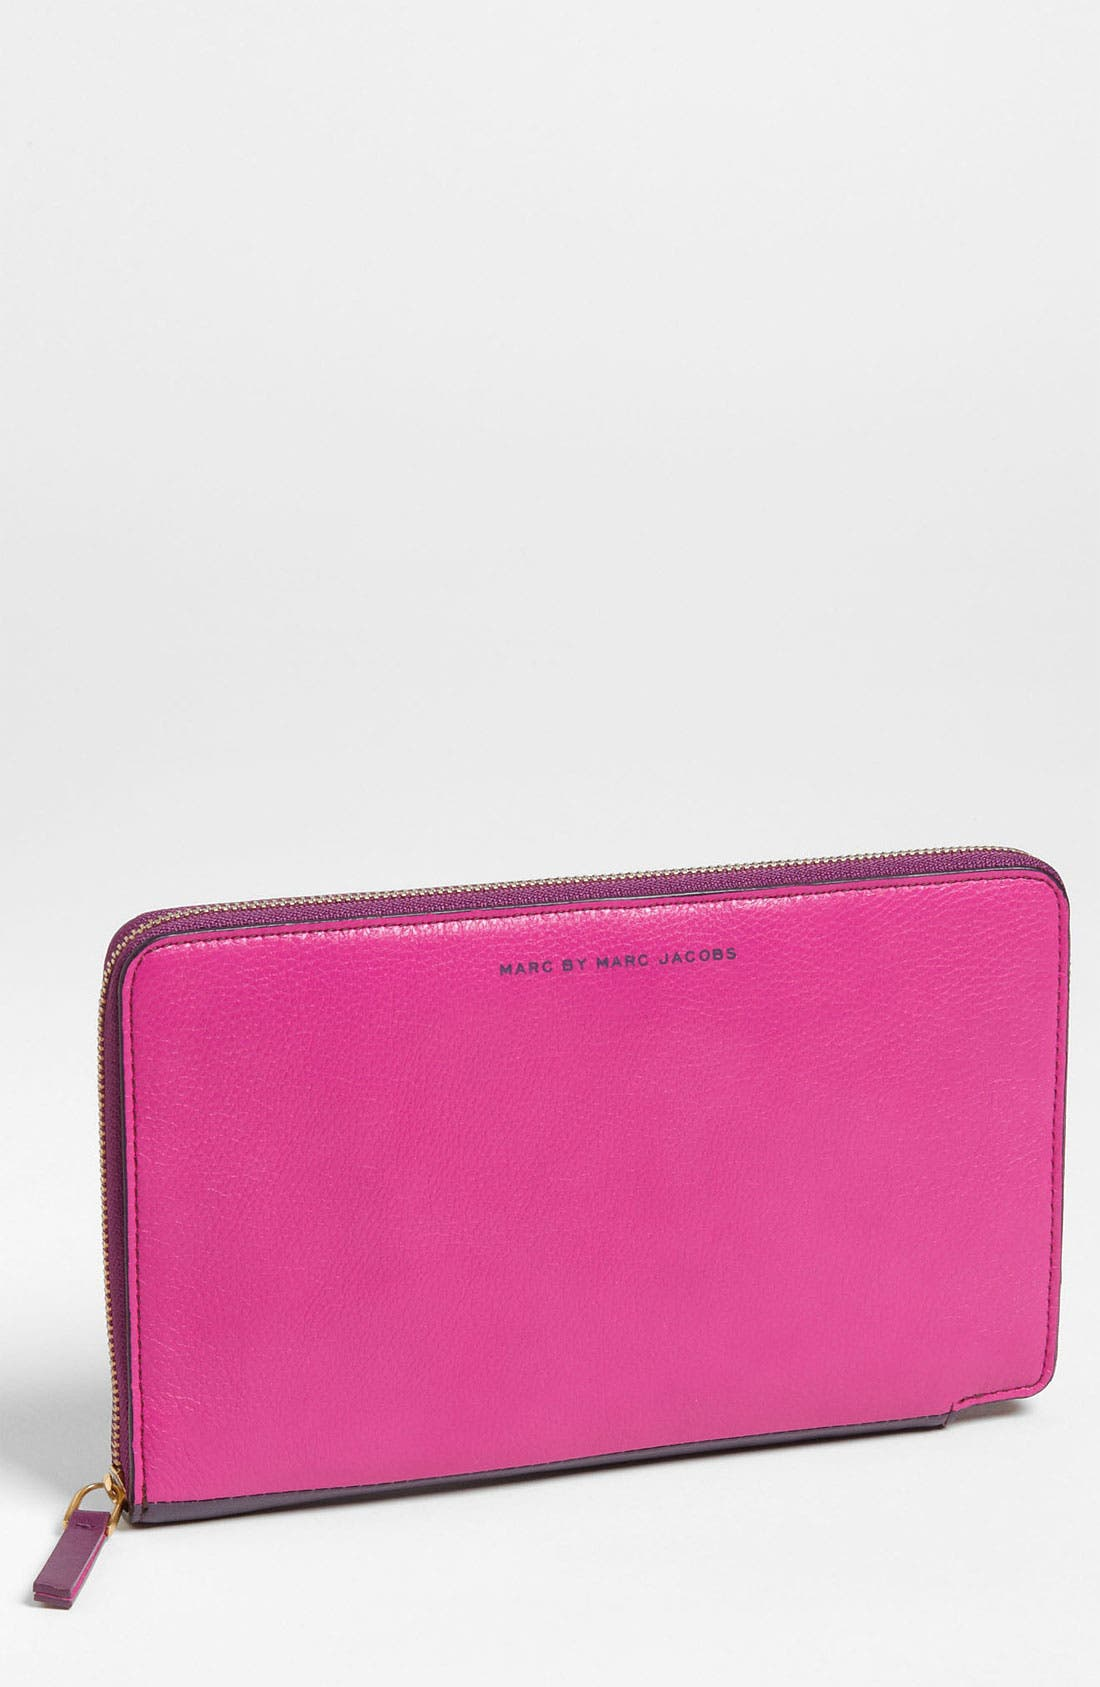 Alternate Image 1 Selected - MARC BY MARC JACOBS 'Sophisticato' Travel Wallet